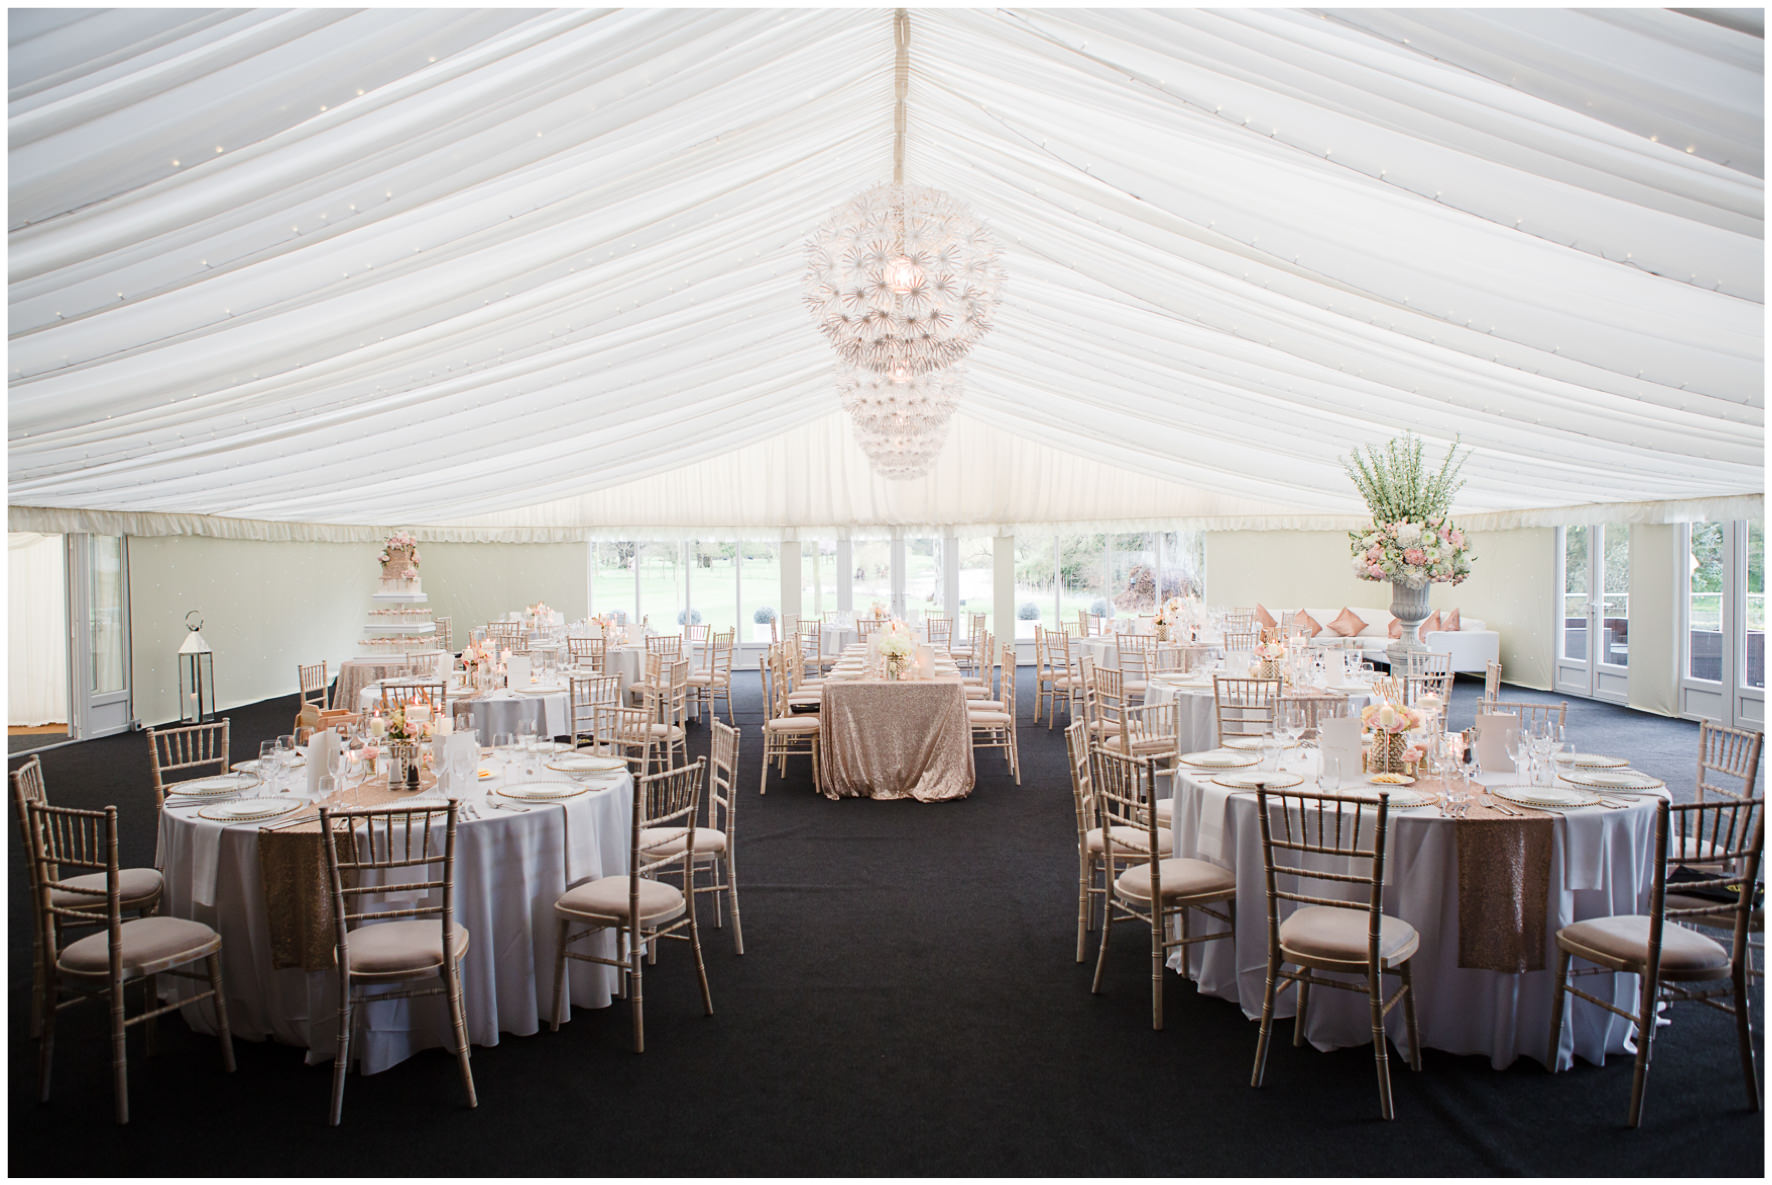 Lucy Davenport Photography, Katrina Otter Weddings, Chippenham Park, marquee, wedding breakfast, tablescape